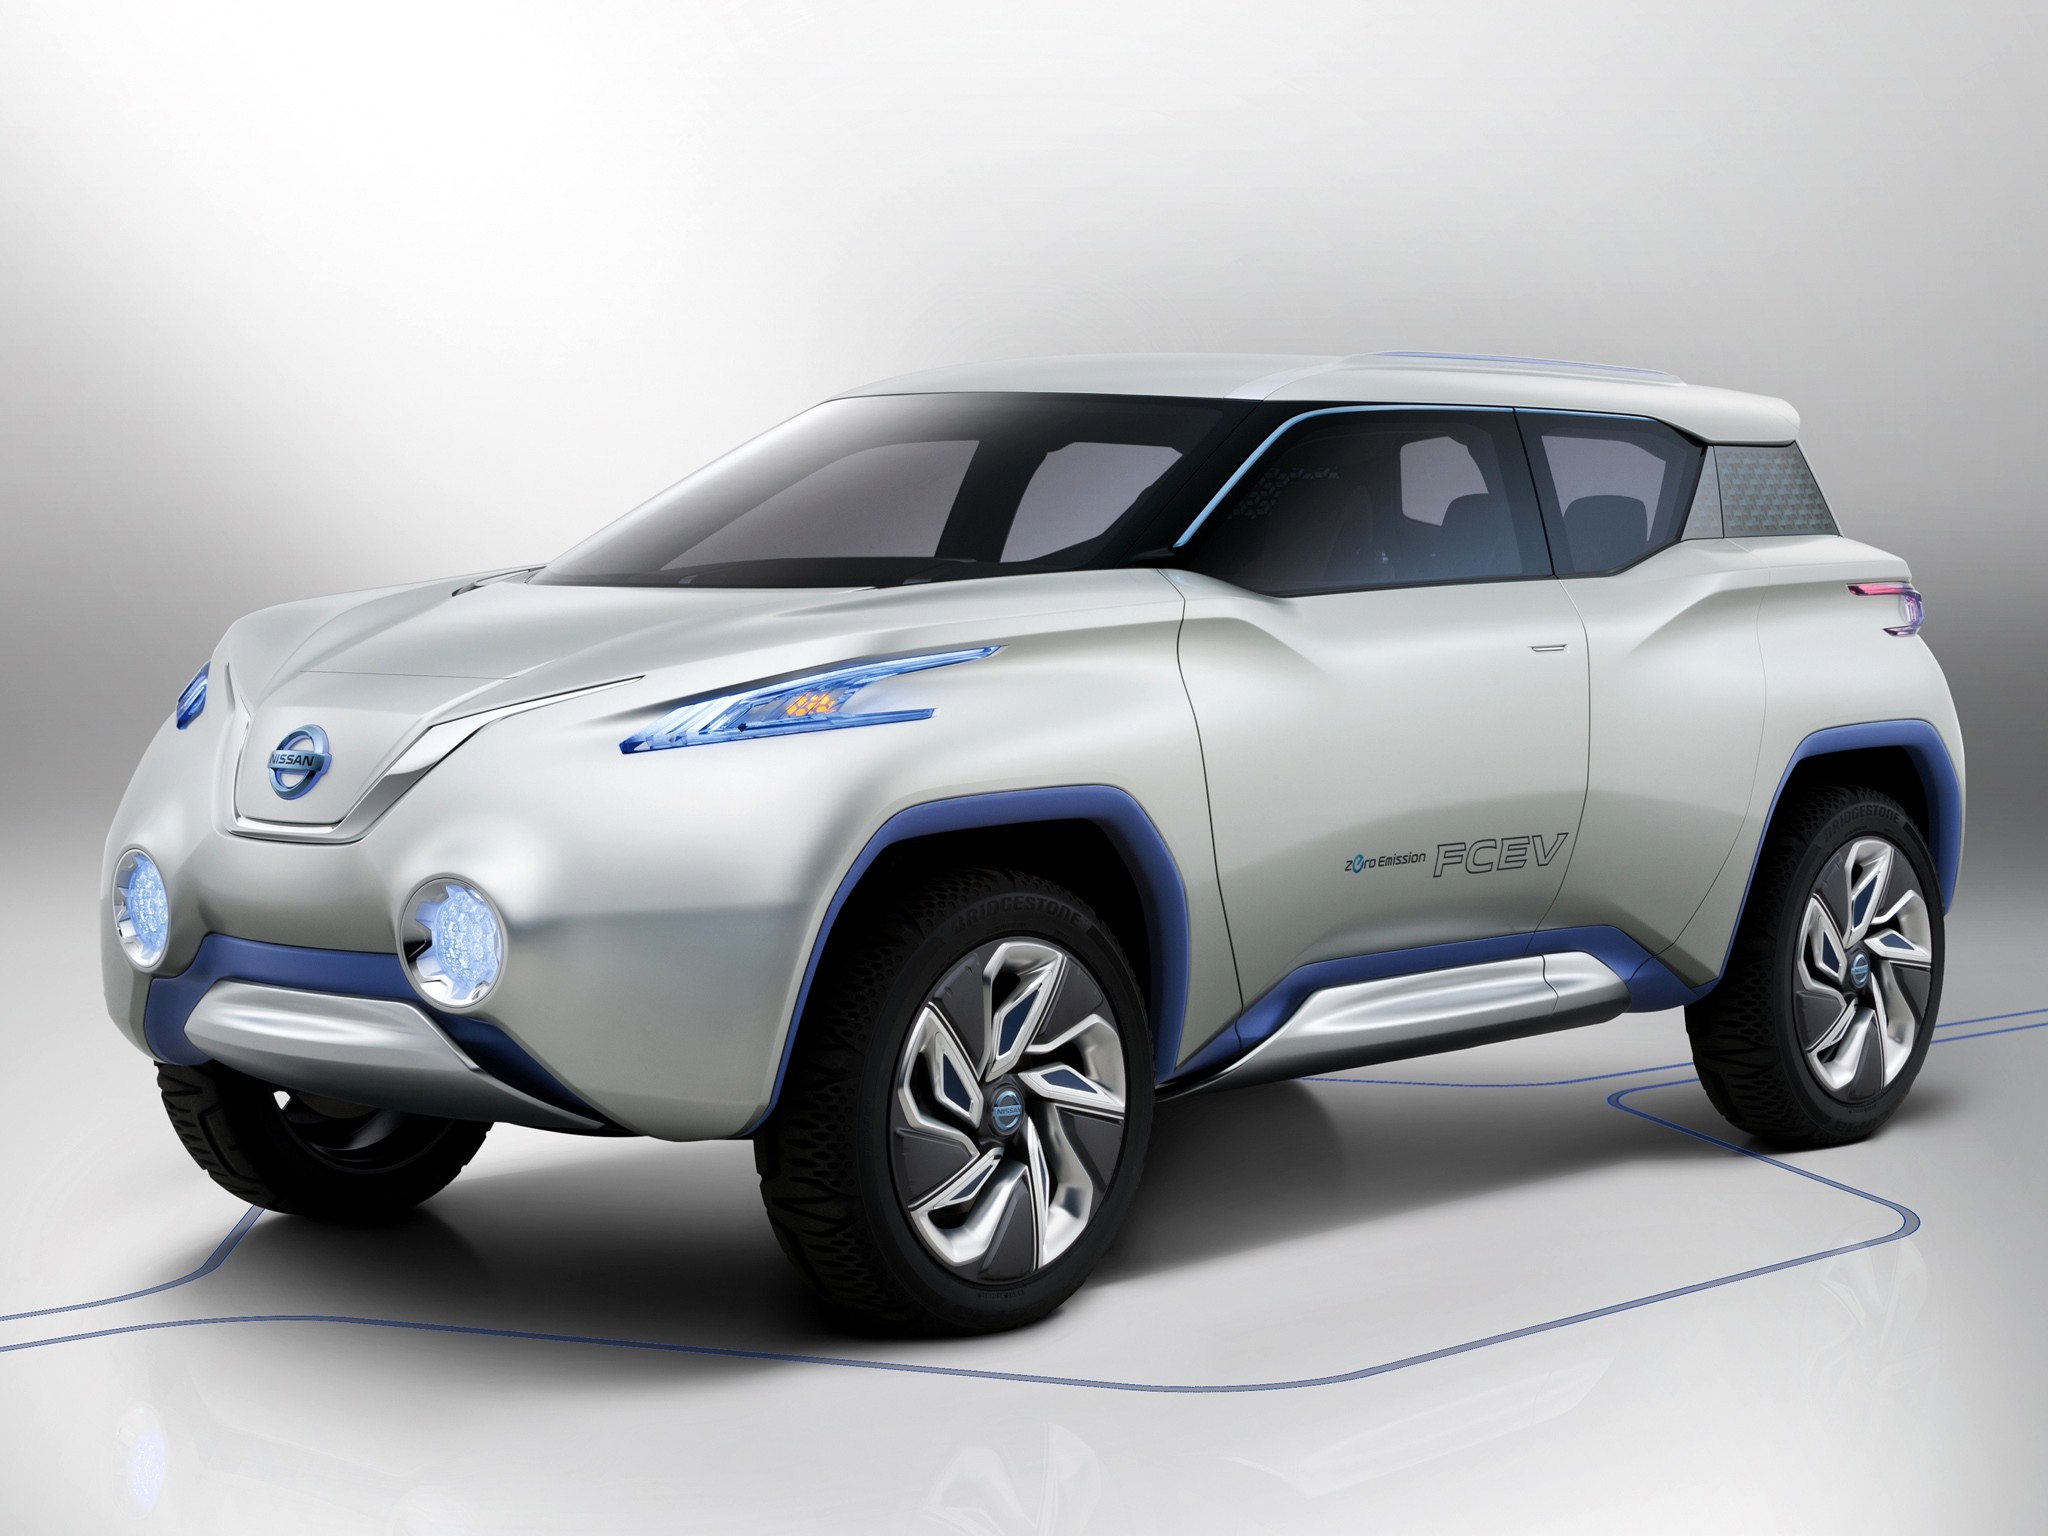 facelift review the nissan models express trail new x suv auto